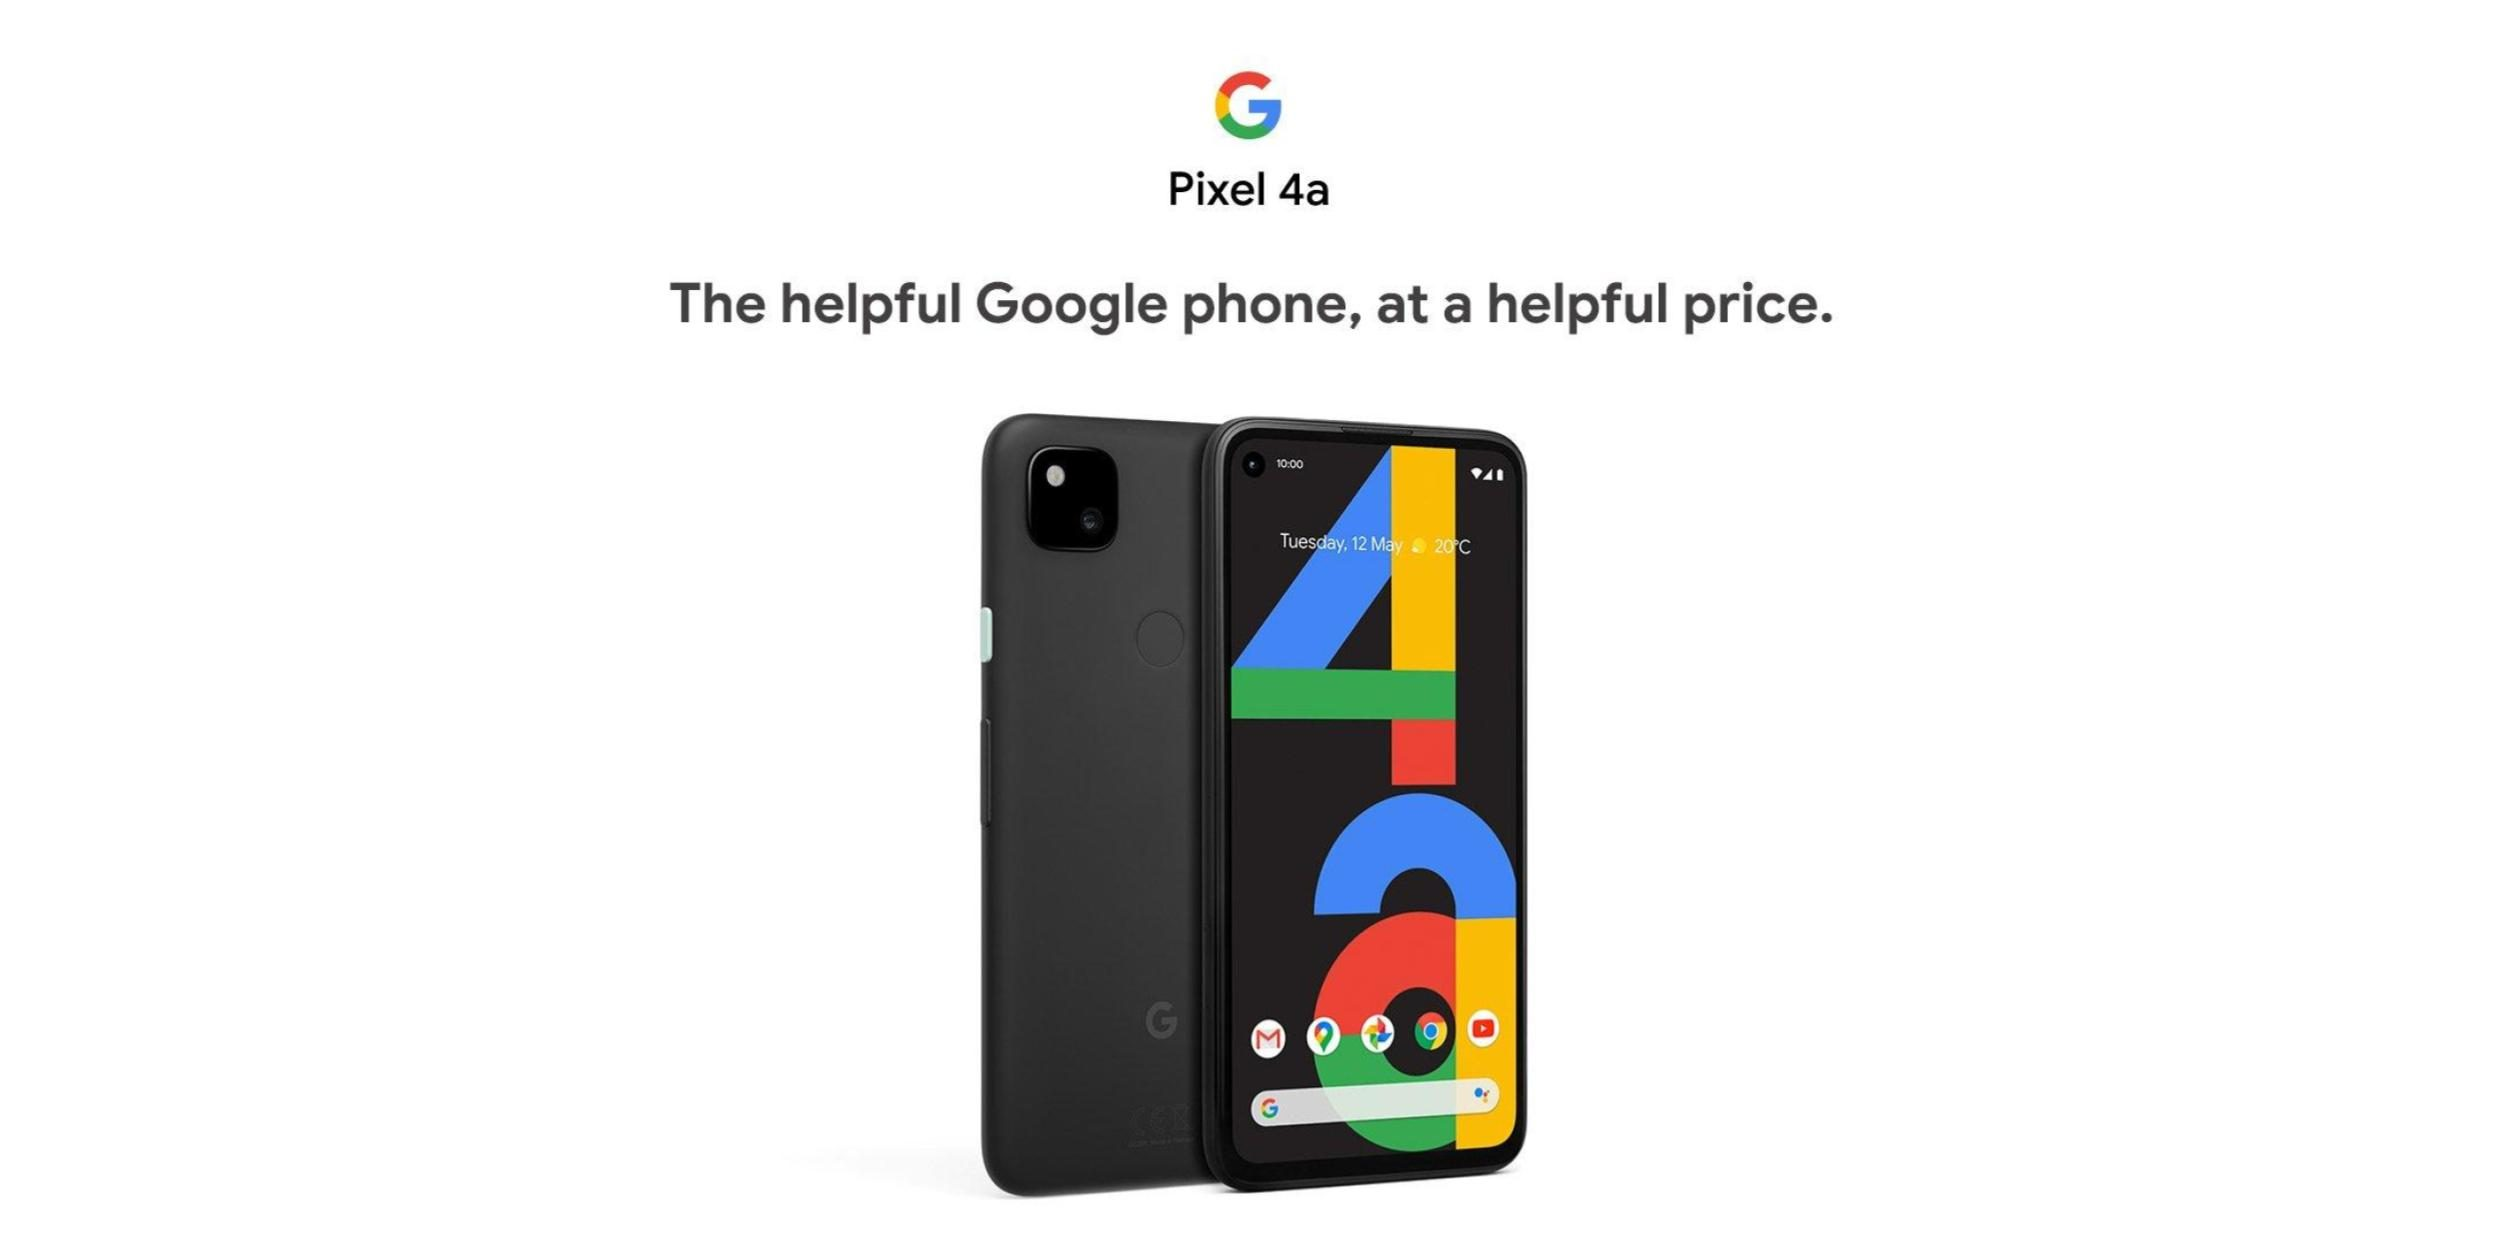 Pixel 4a listing: 'helpful Google phone, at a helpful price'